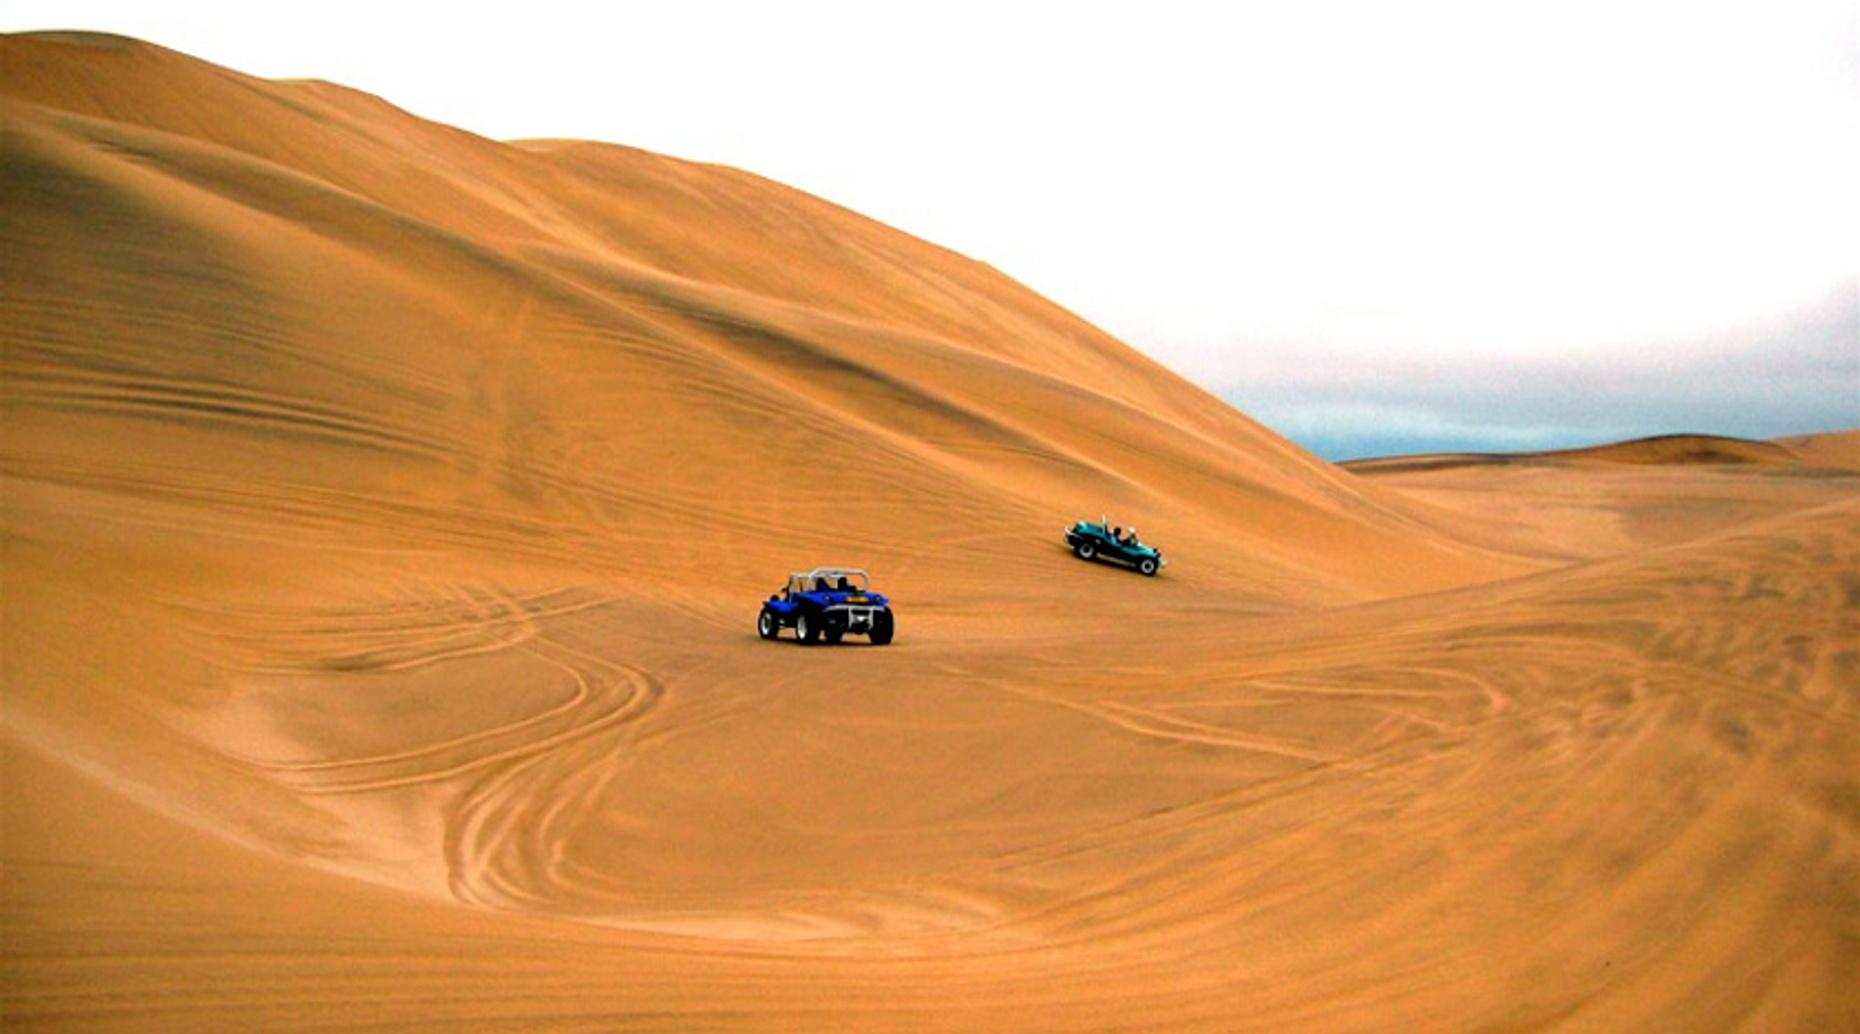 Turks and Caicos Dune Buggy Tour With Cruise Ship Access